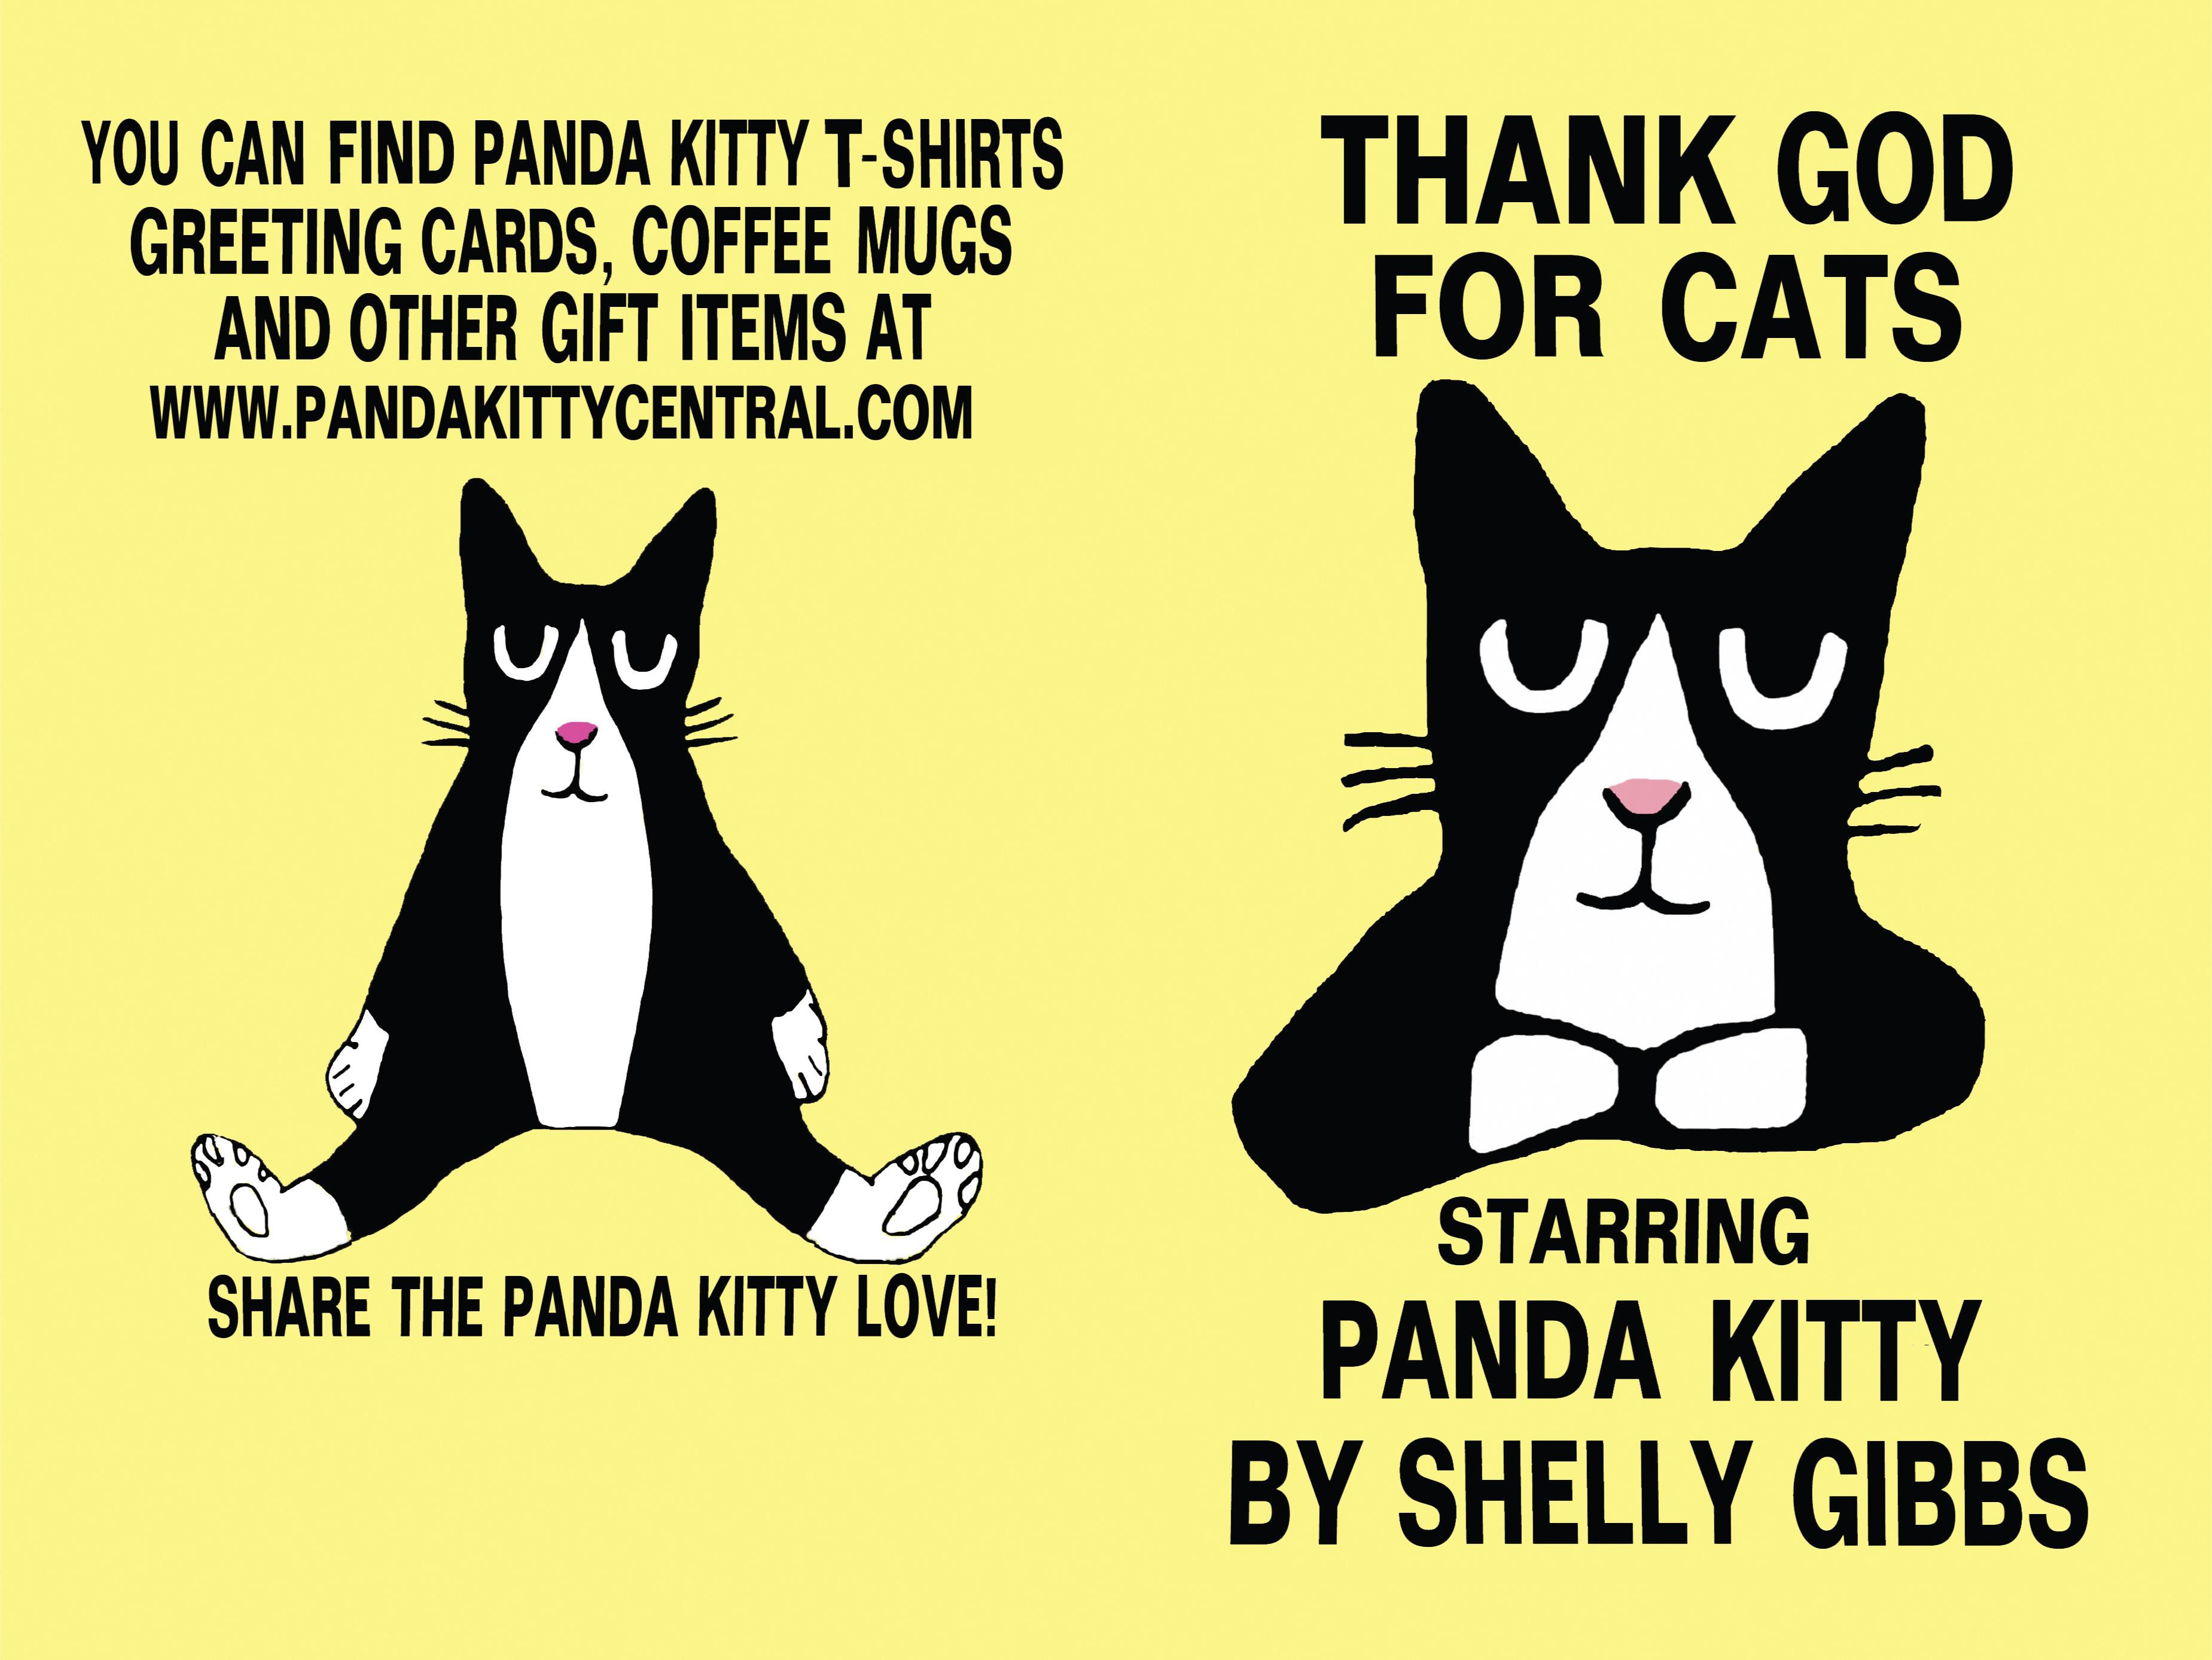 THANK GOD FOR CATS, Starring Panda Kitty cover image